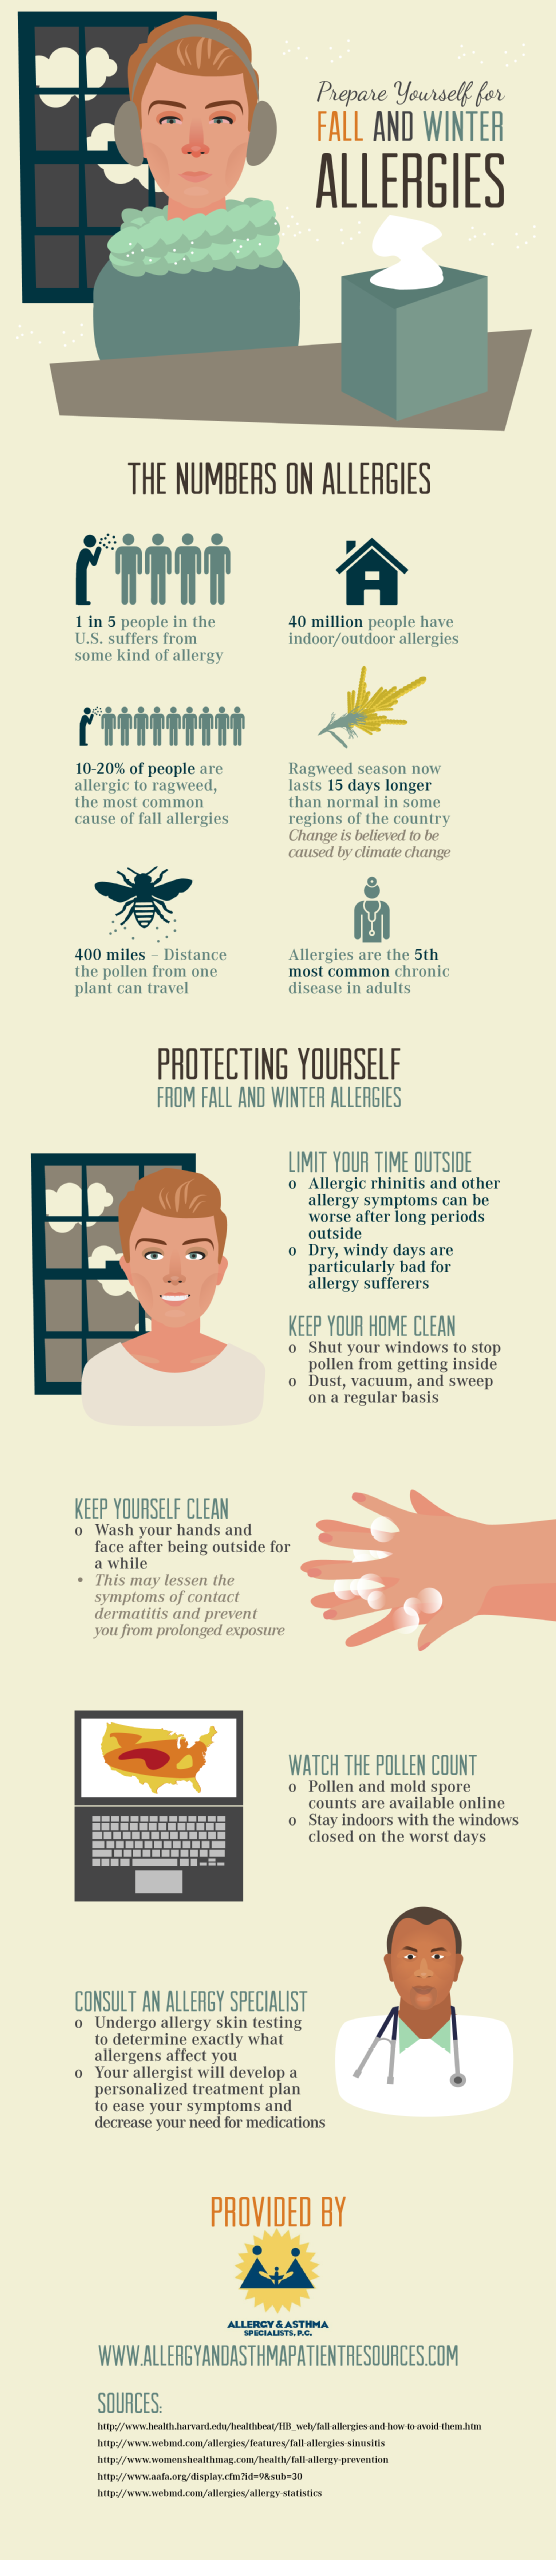 Common Household Allergens | Tips to Ease Your Symptoms